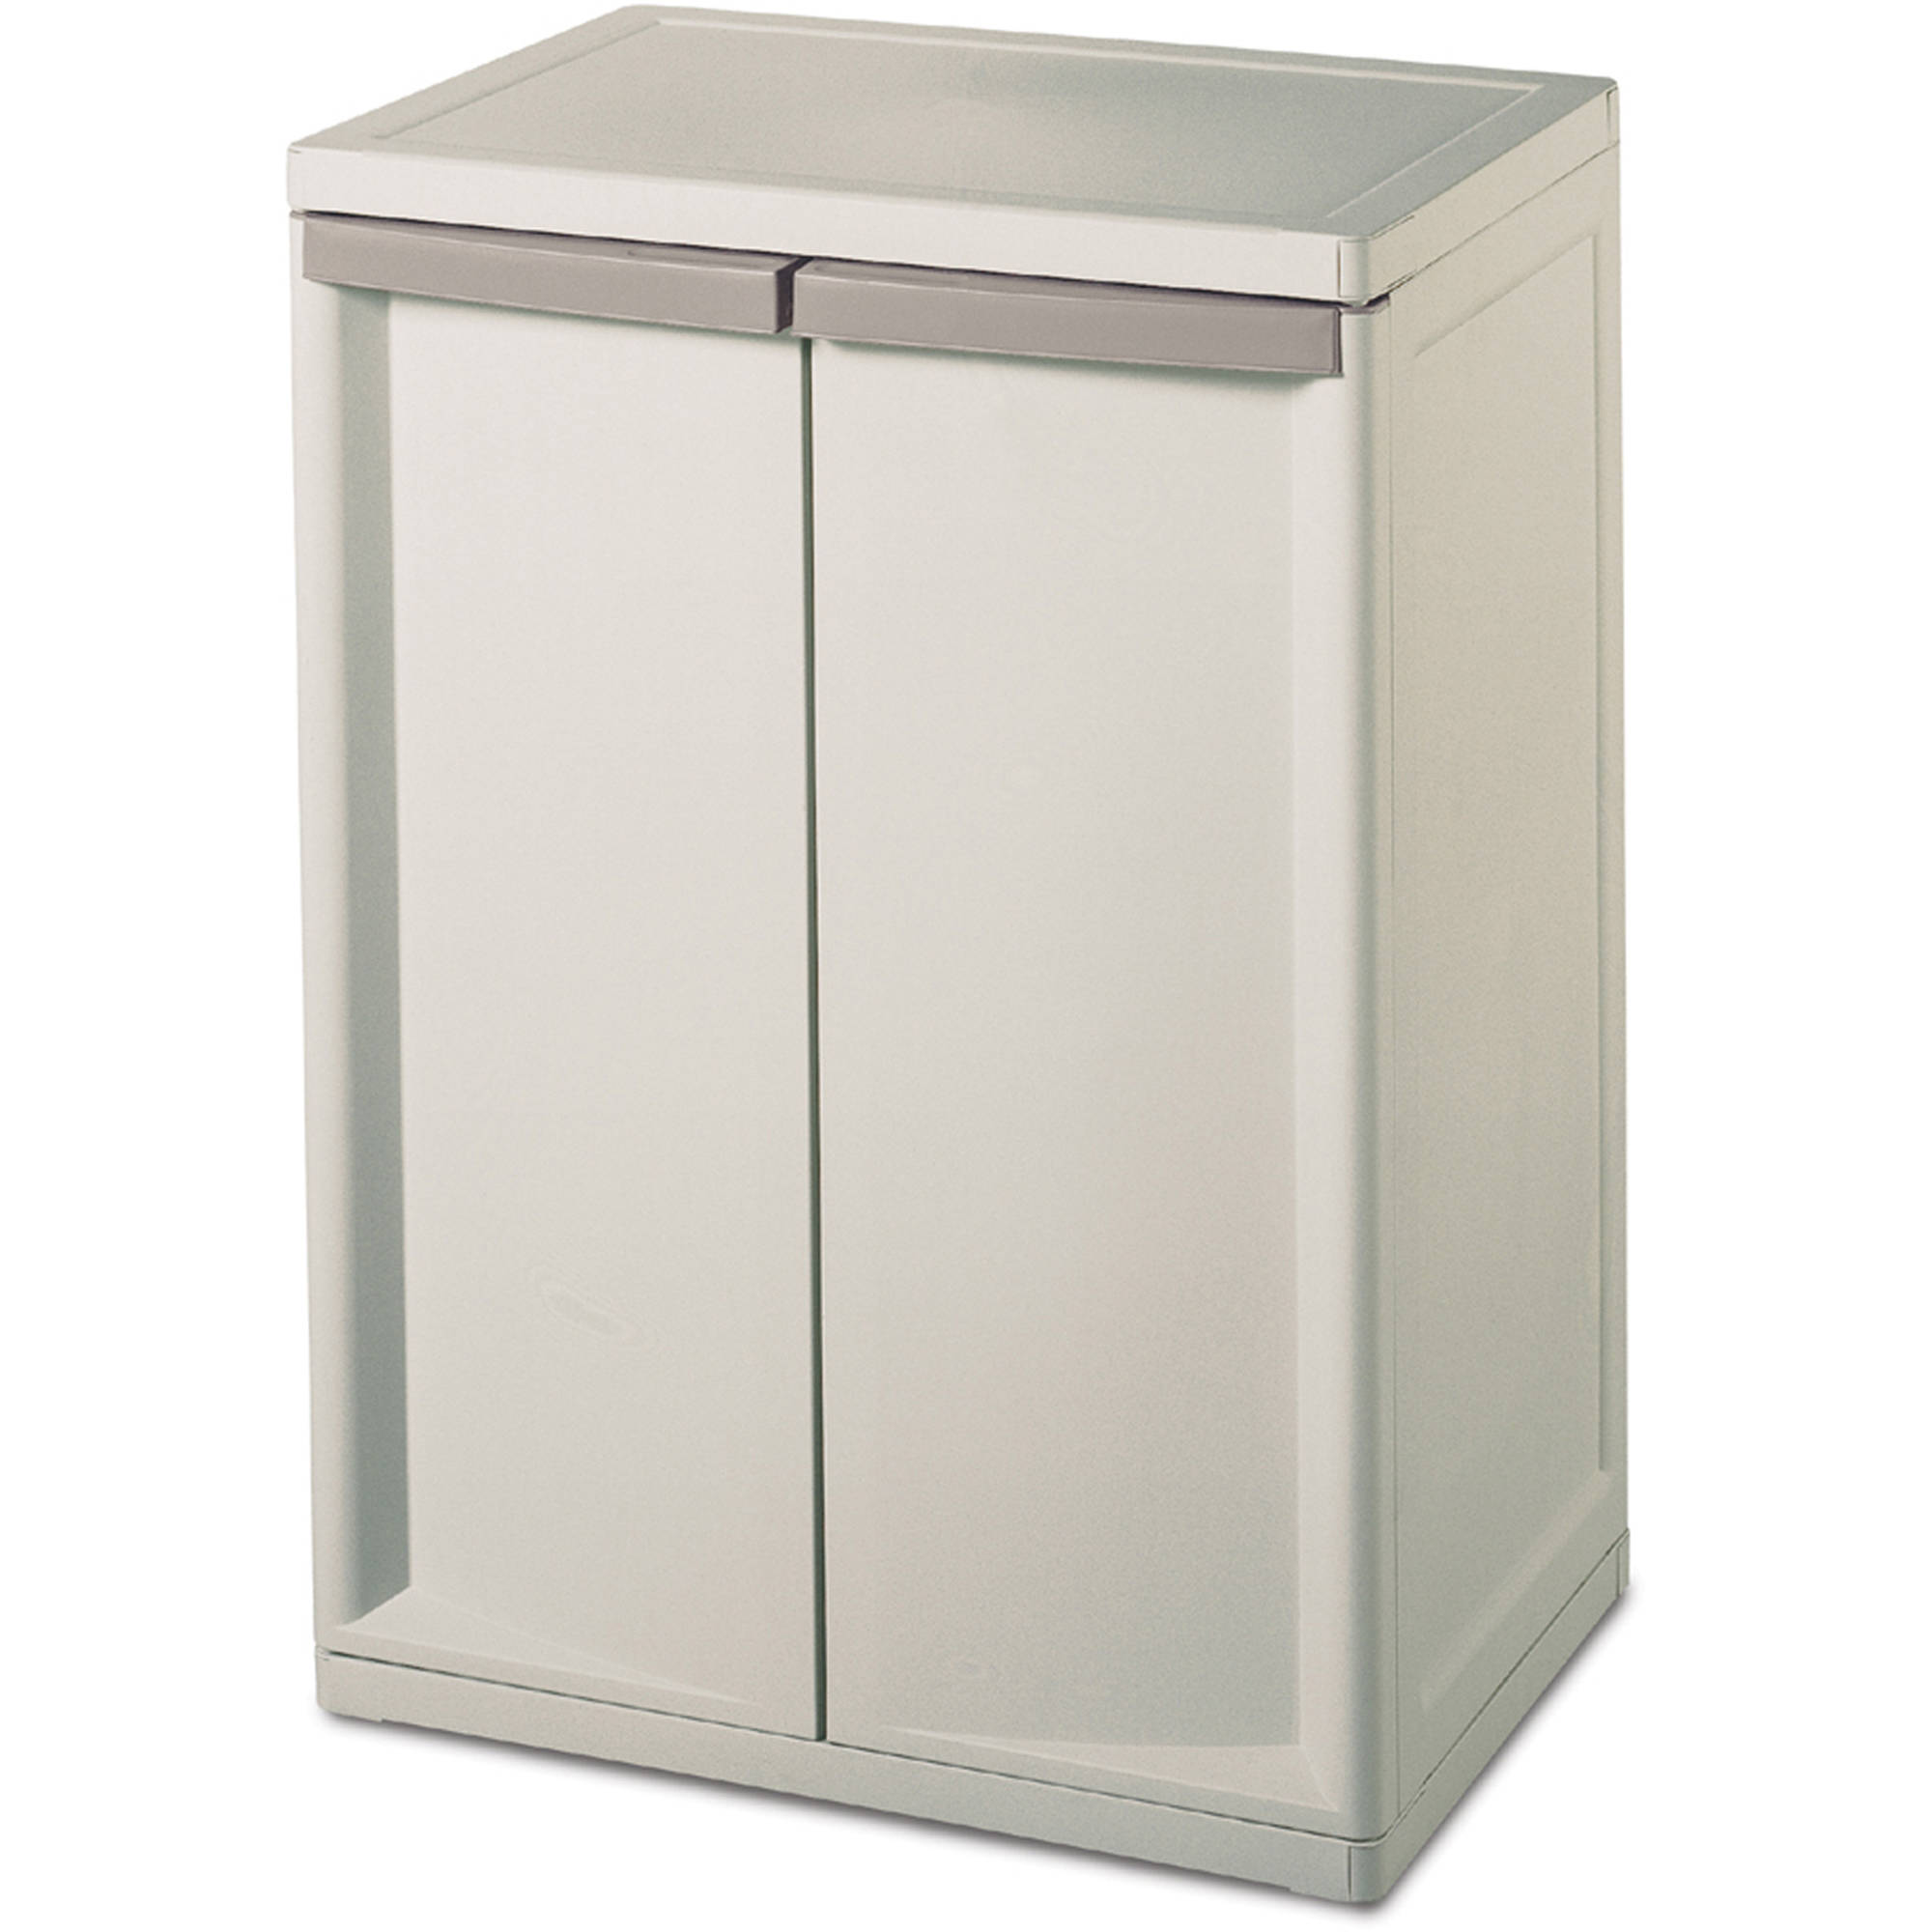 Resin Utility Cabinet Freestanding Pantry Cabinets Pantries Carts Islands Walmartcom